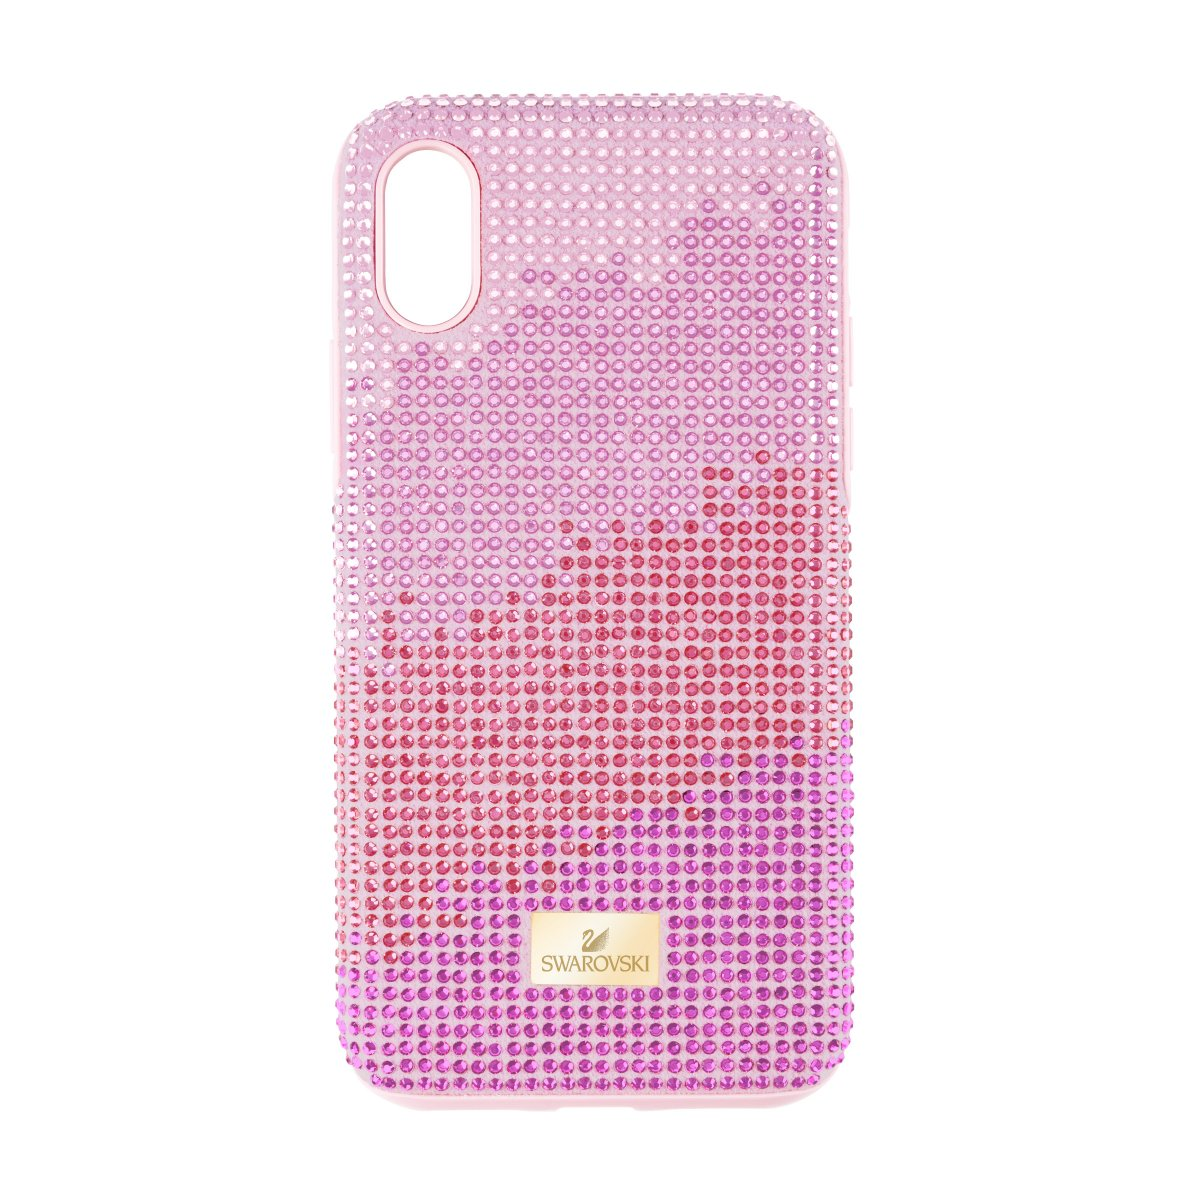 SWAROVSKI kryt na iPhone HIGH LOVE IPXR:CASE PINK